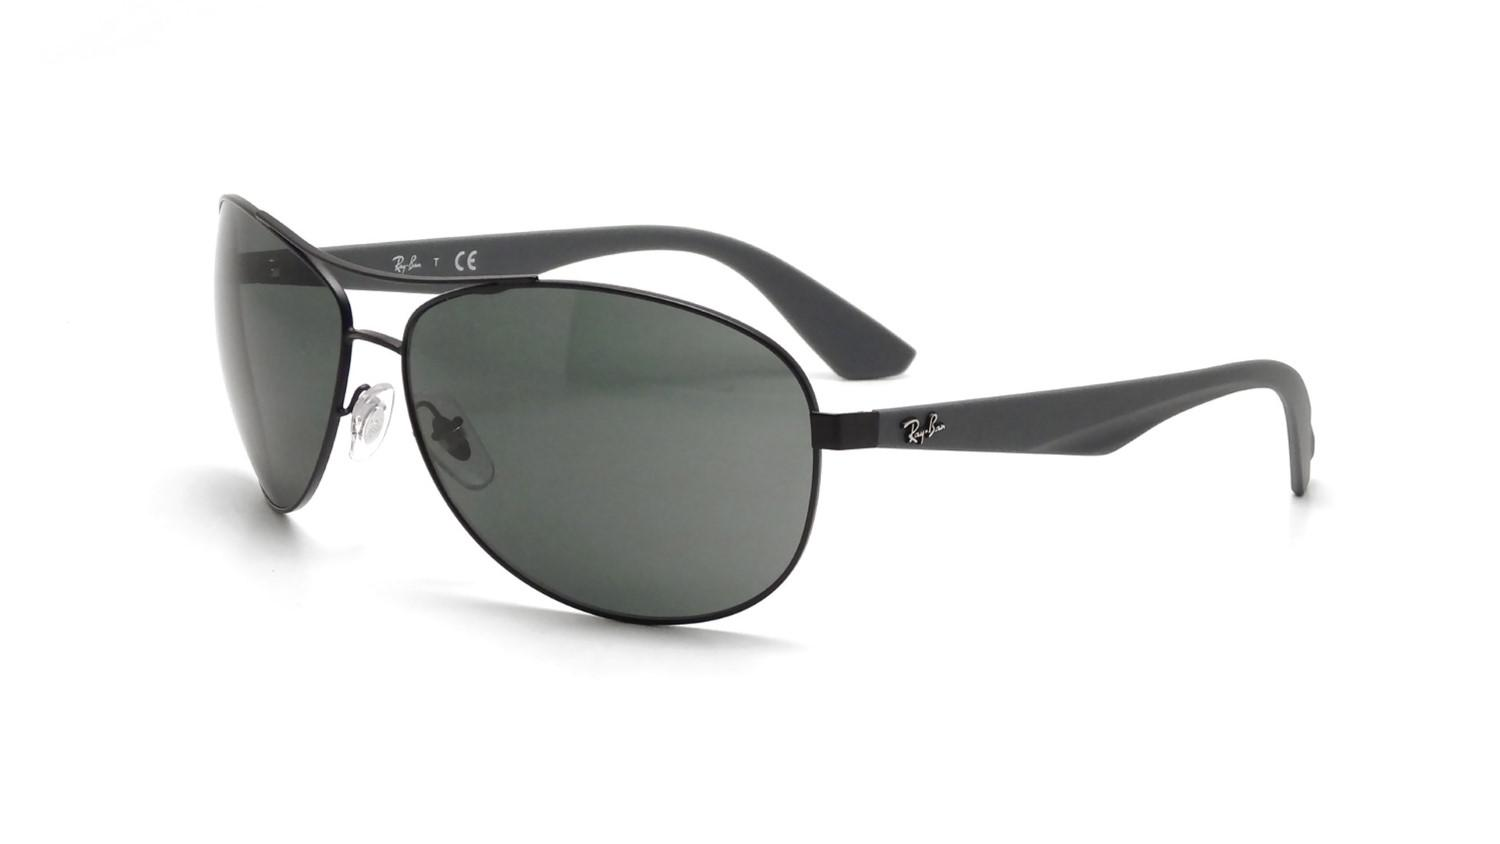 5c743e3451 Lyst - Ray-Ban 0rb3526 006 71 63 Matte Black grey Green Active ...